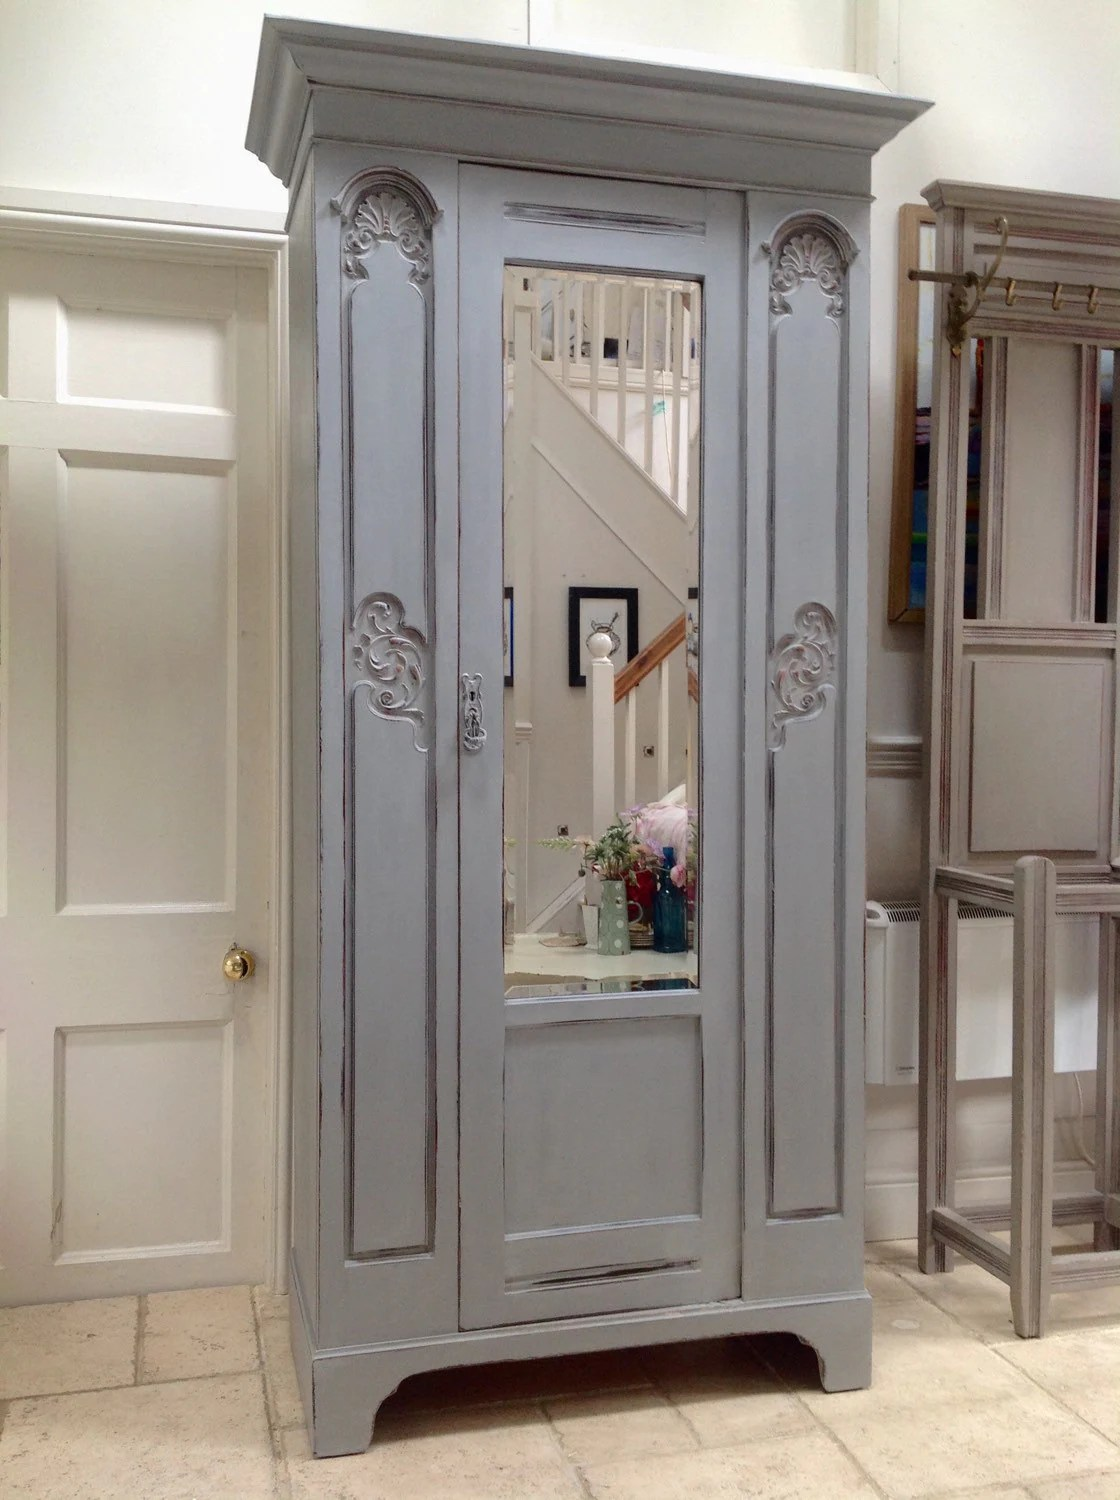 Painted Armoire Wardrobe A Good Way To Paint A Wardrobe